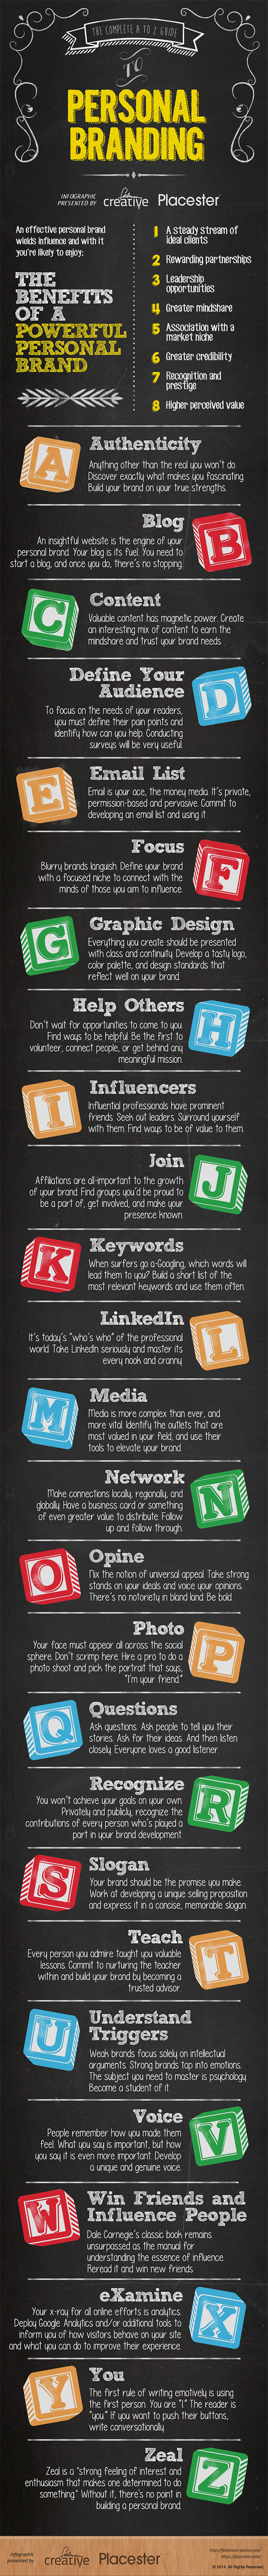 Infographic: The Complete A to Z Guide to Personal Branding